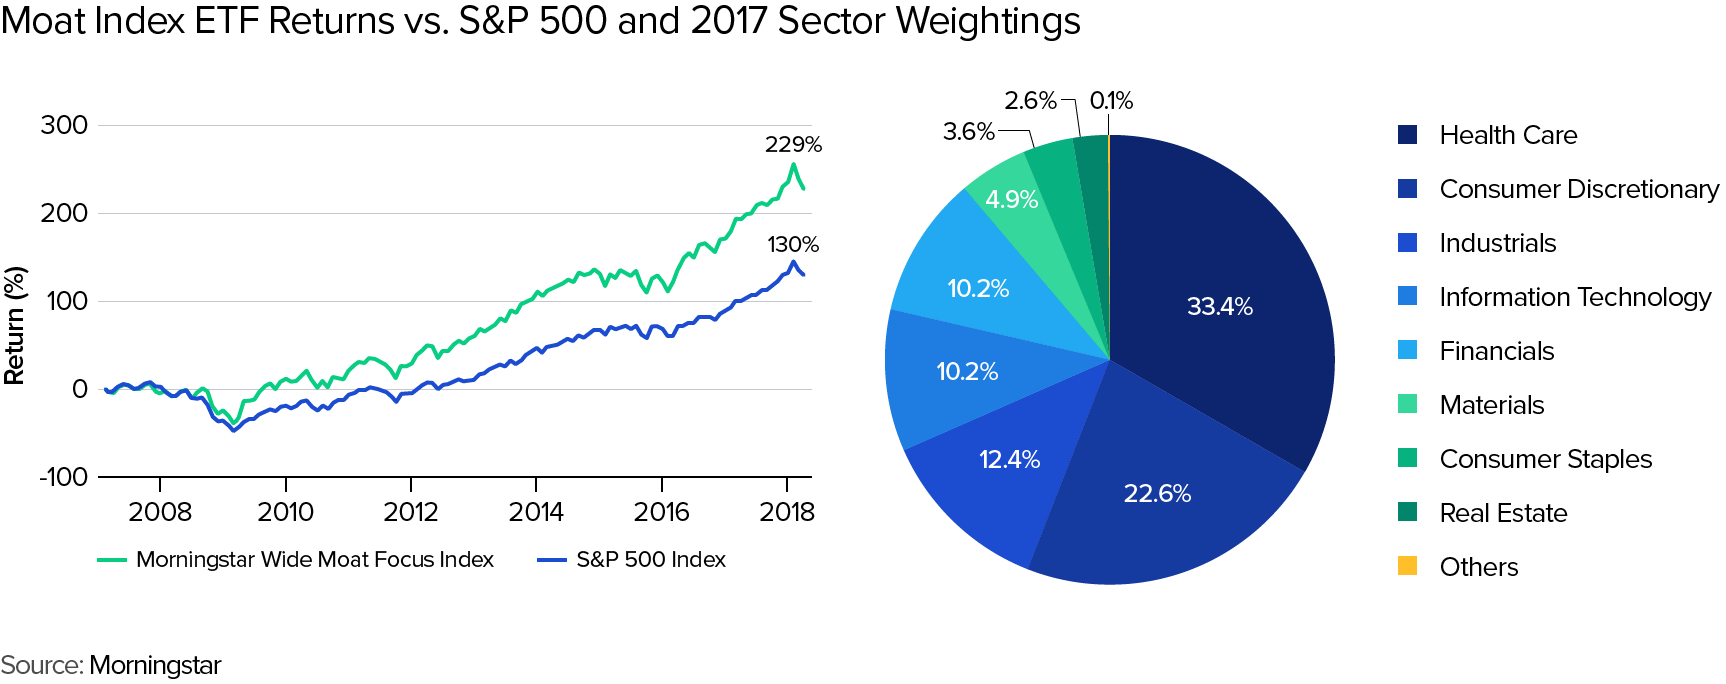 Comparaison de l'indice Moat Wide Morningstar et le S&P500